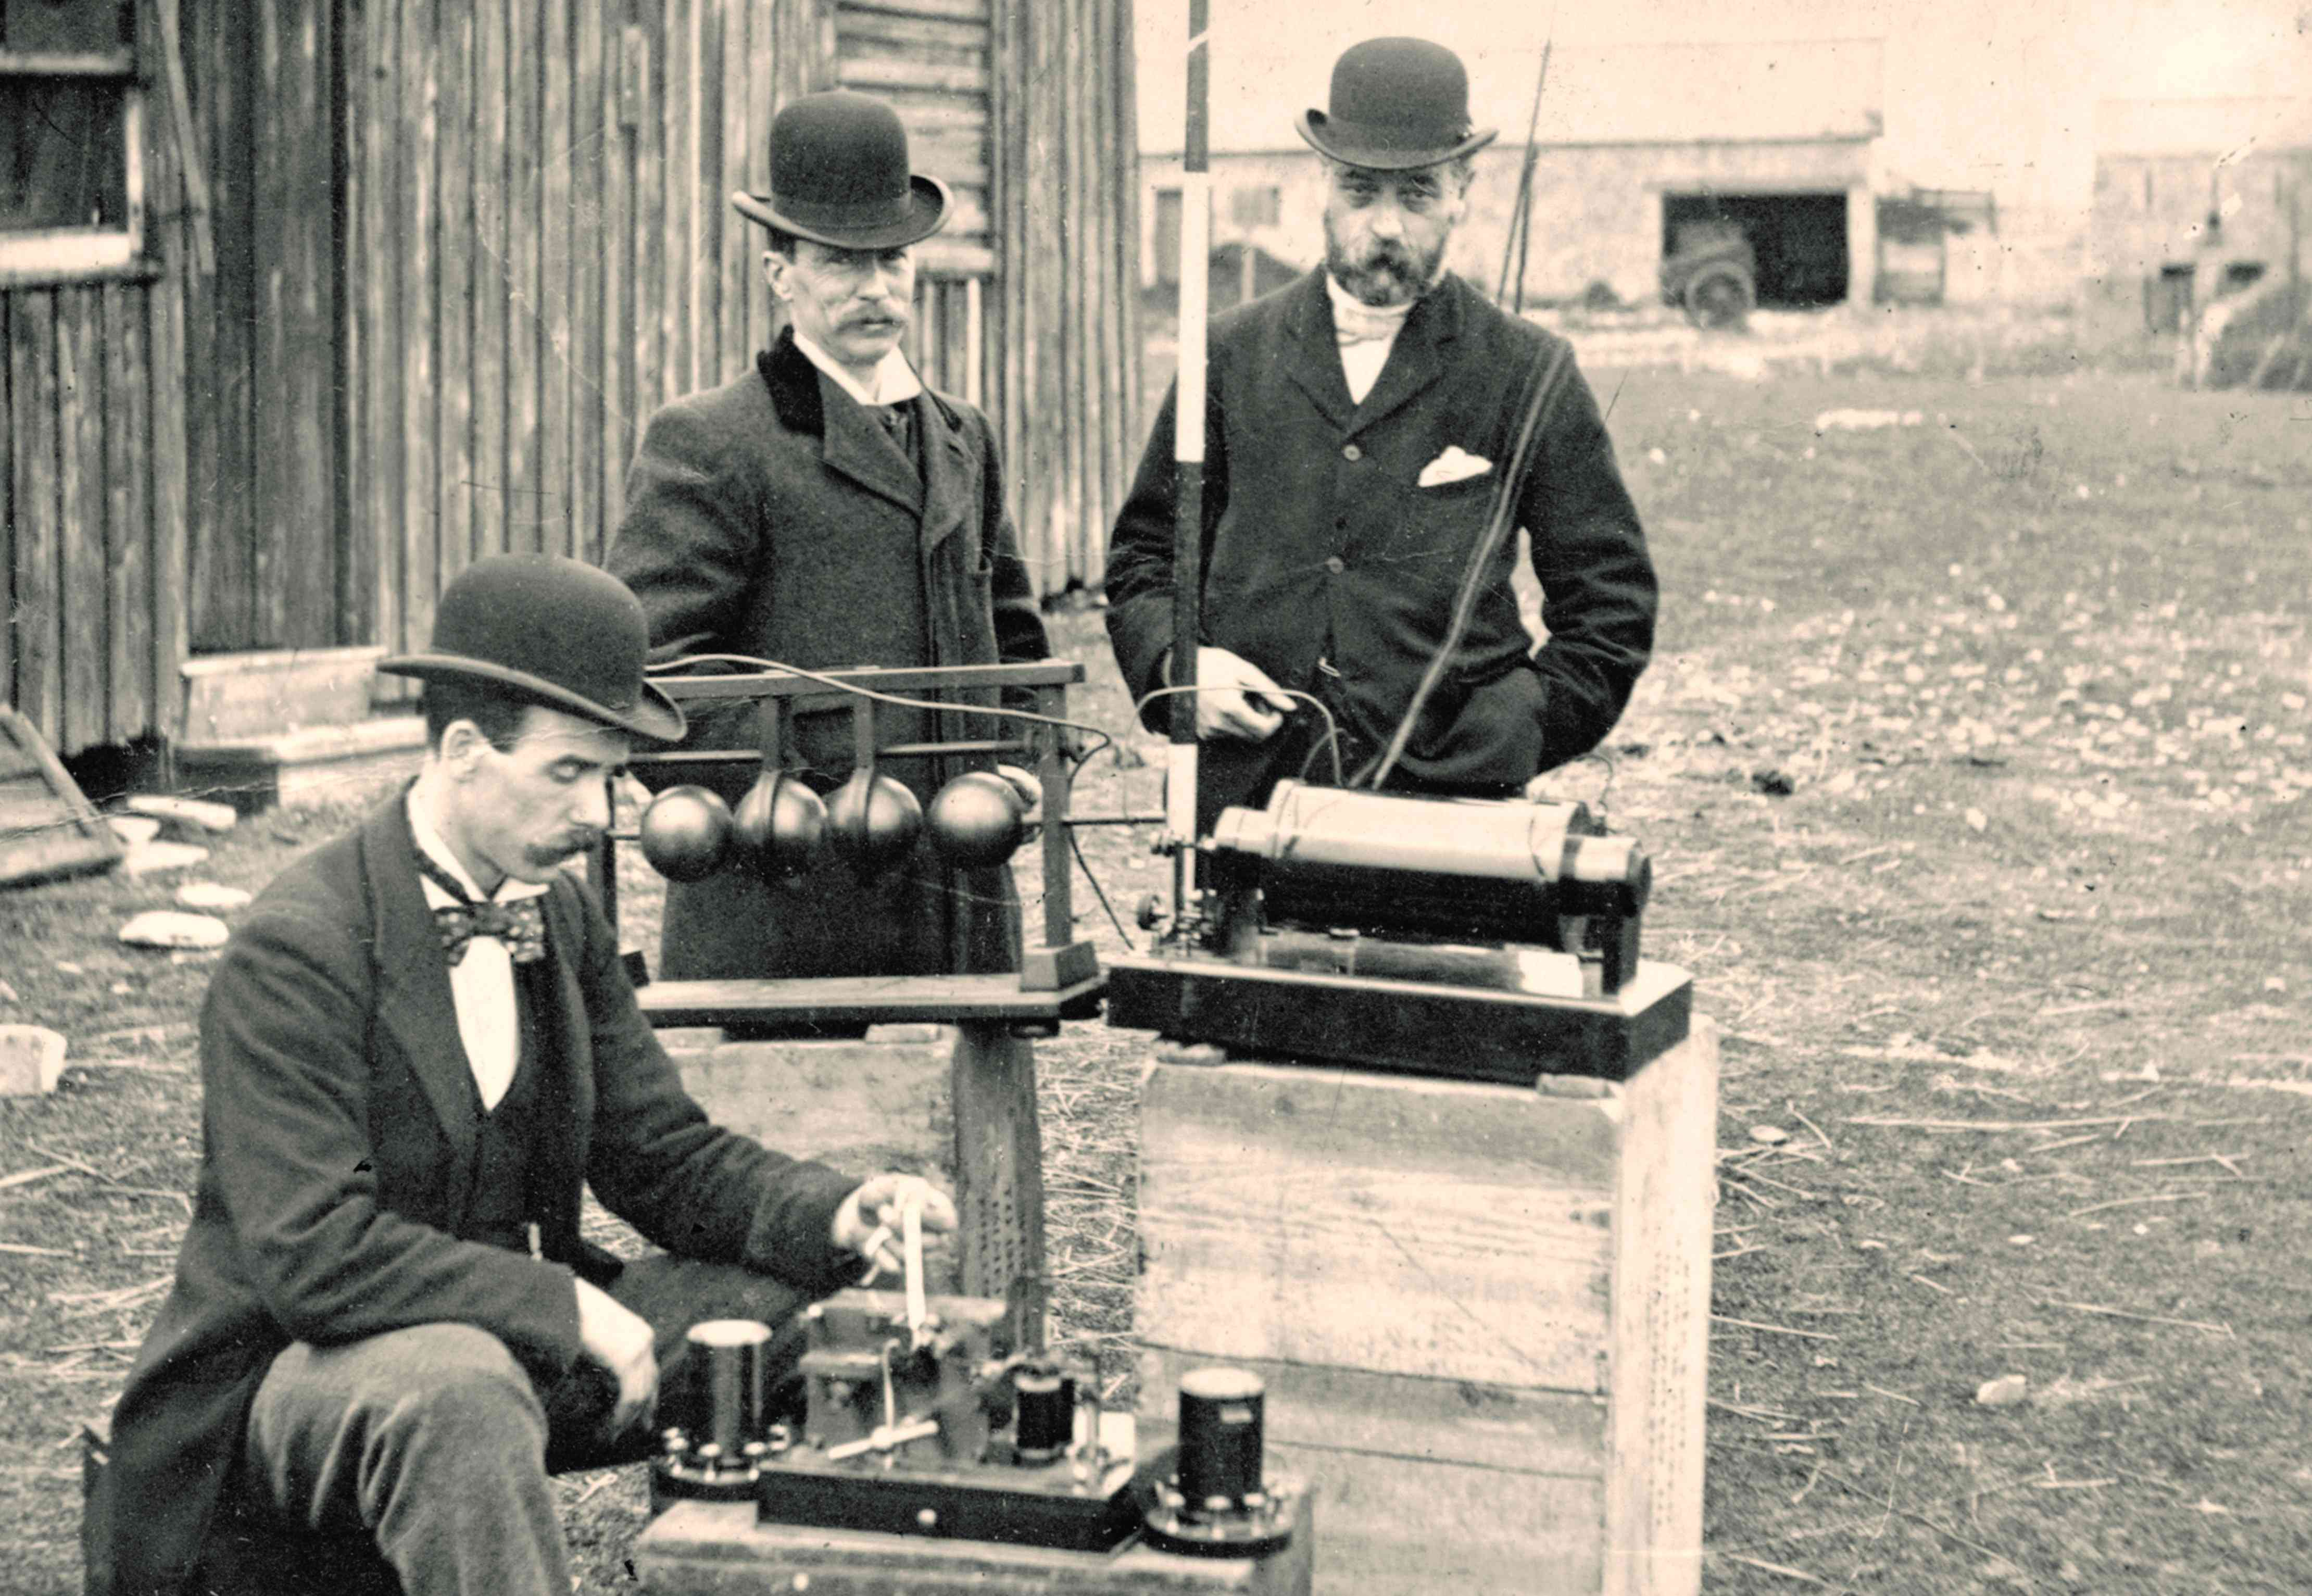 Old photograph of British Post Office engineers inspecting Marconi's radio equipment during a demonstration on Flat Holm Island, May 13, 1897